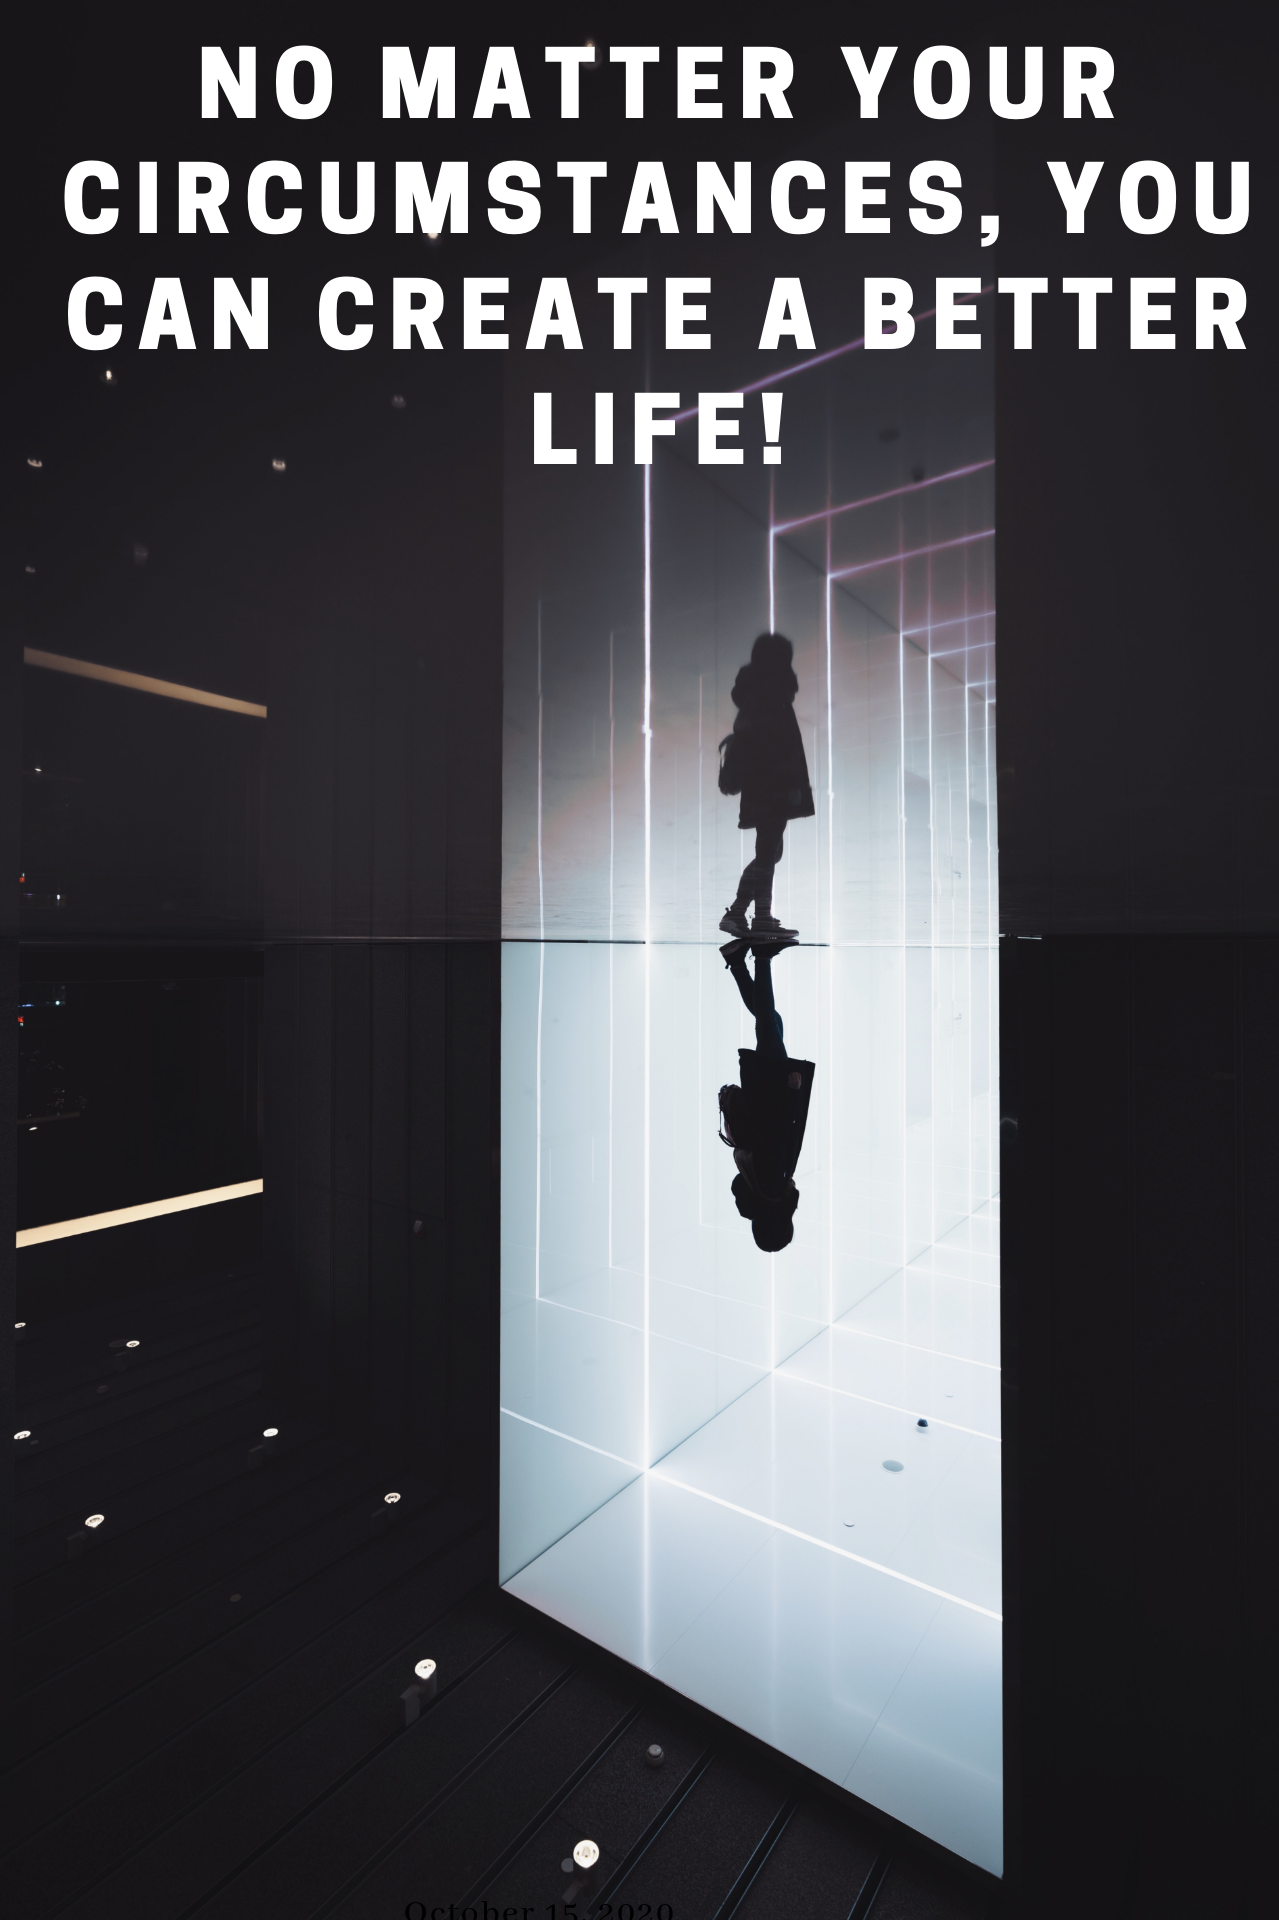 No matter your circumstances, you can create a better life!.png